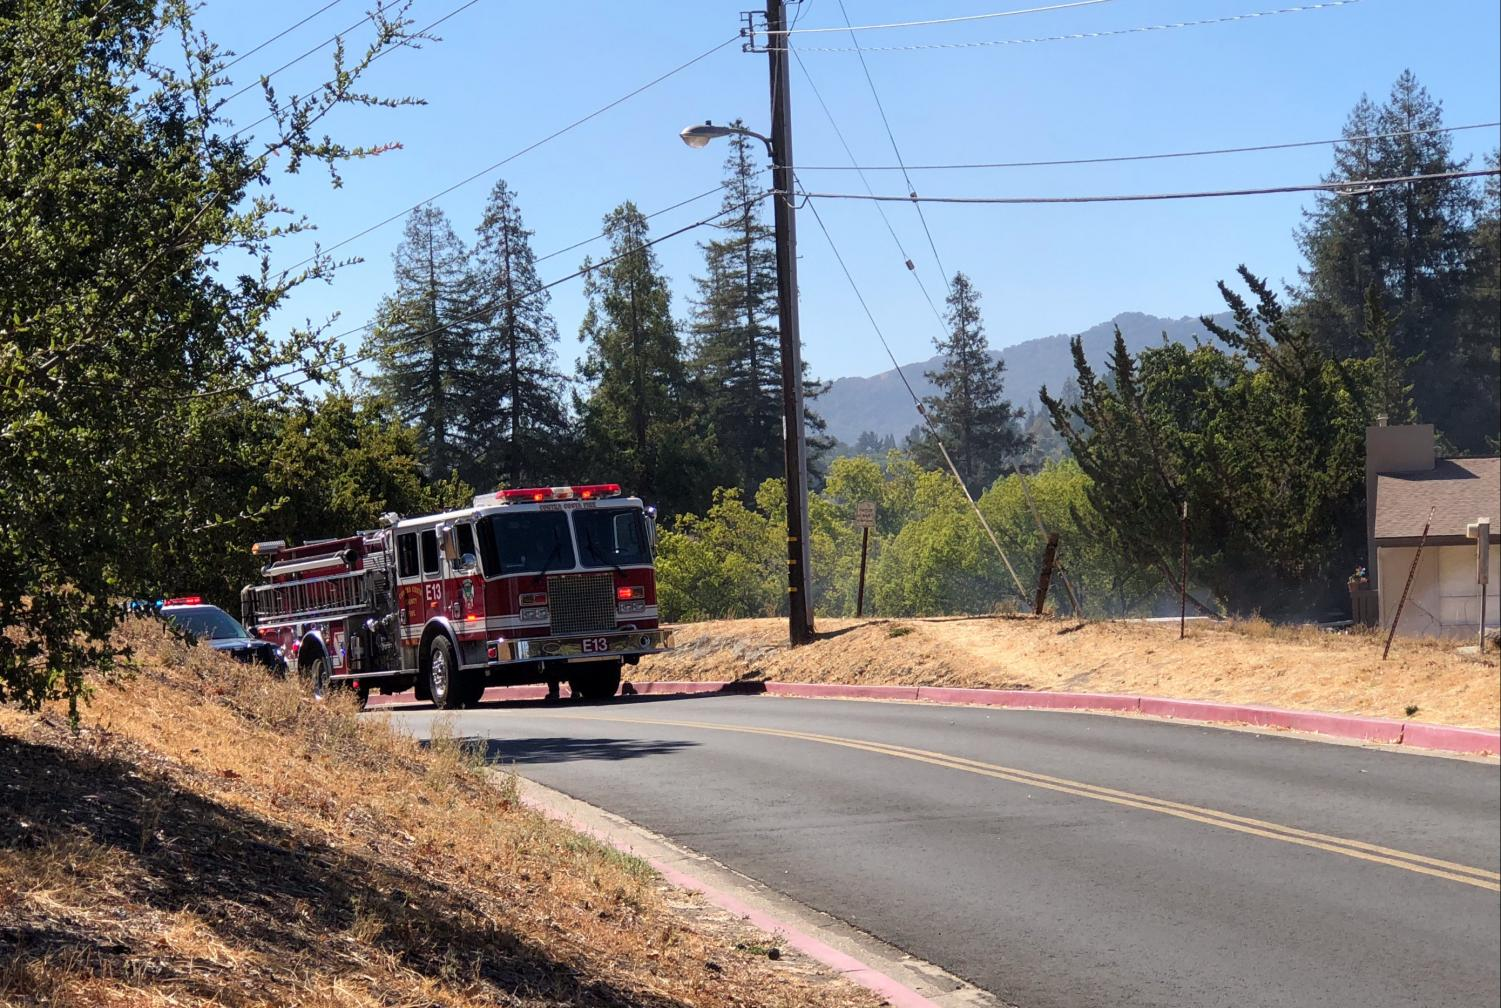 Engine E13 arriving on scene at 12:45 p.m. (Luis Lopez/DVC Inquirer)